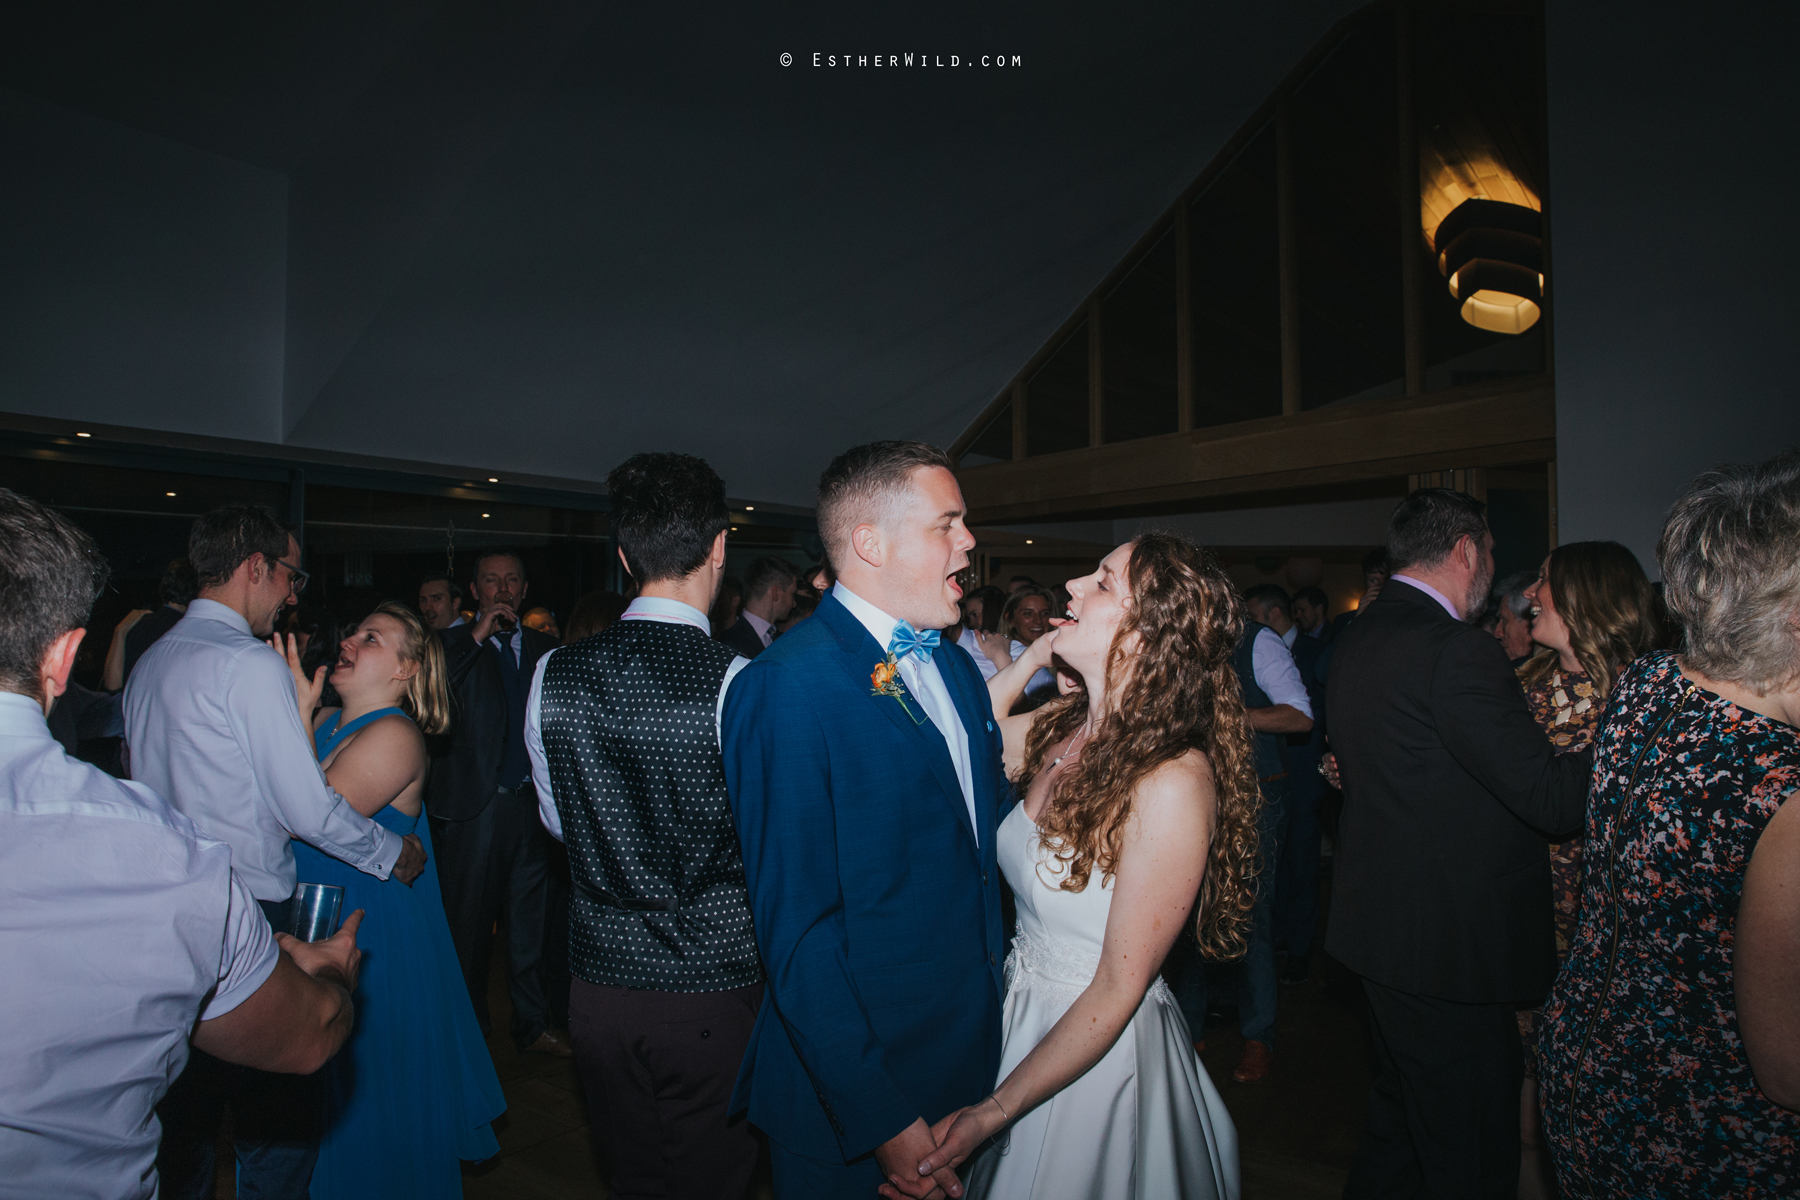 The_BoatHouse_Wedding_Venue_Ormesby_Norfolk_Broads_Boat_Wedding_Photography_Esther_Wild_Photographer_IMG_3582.jpg